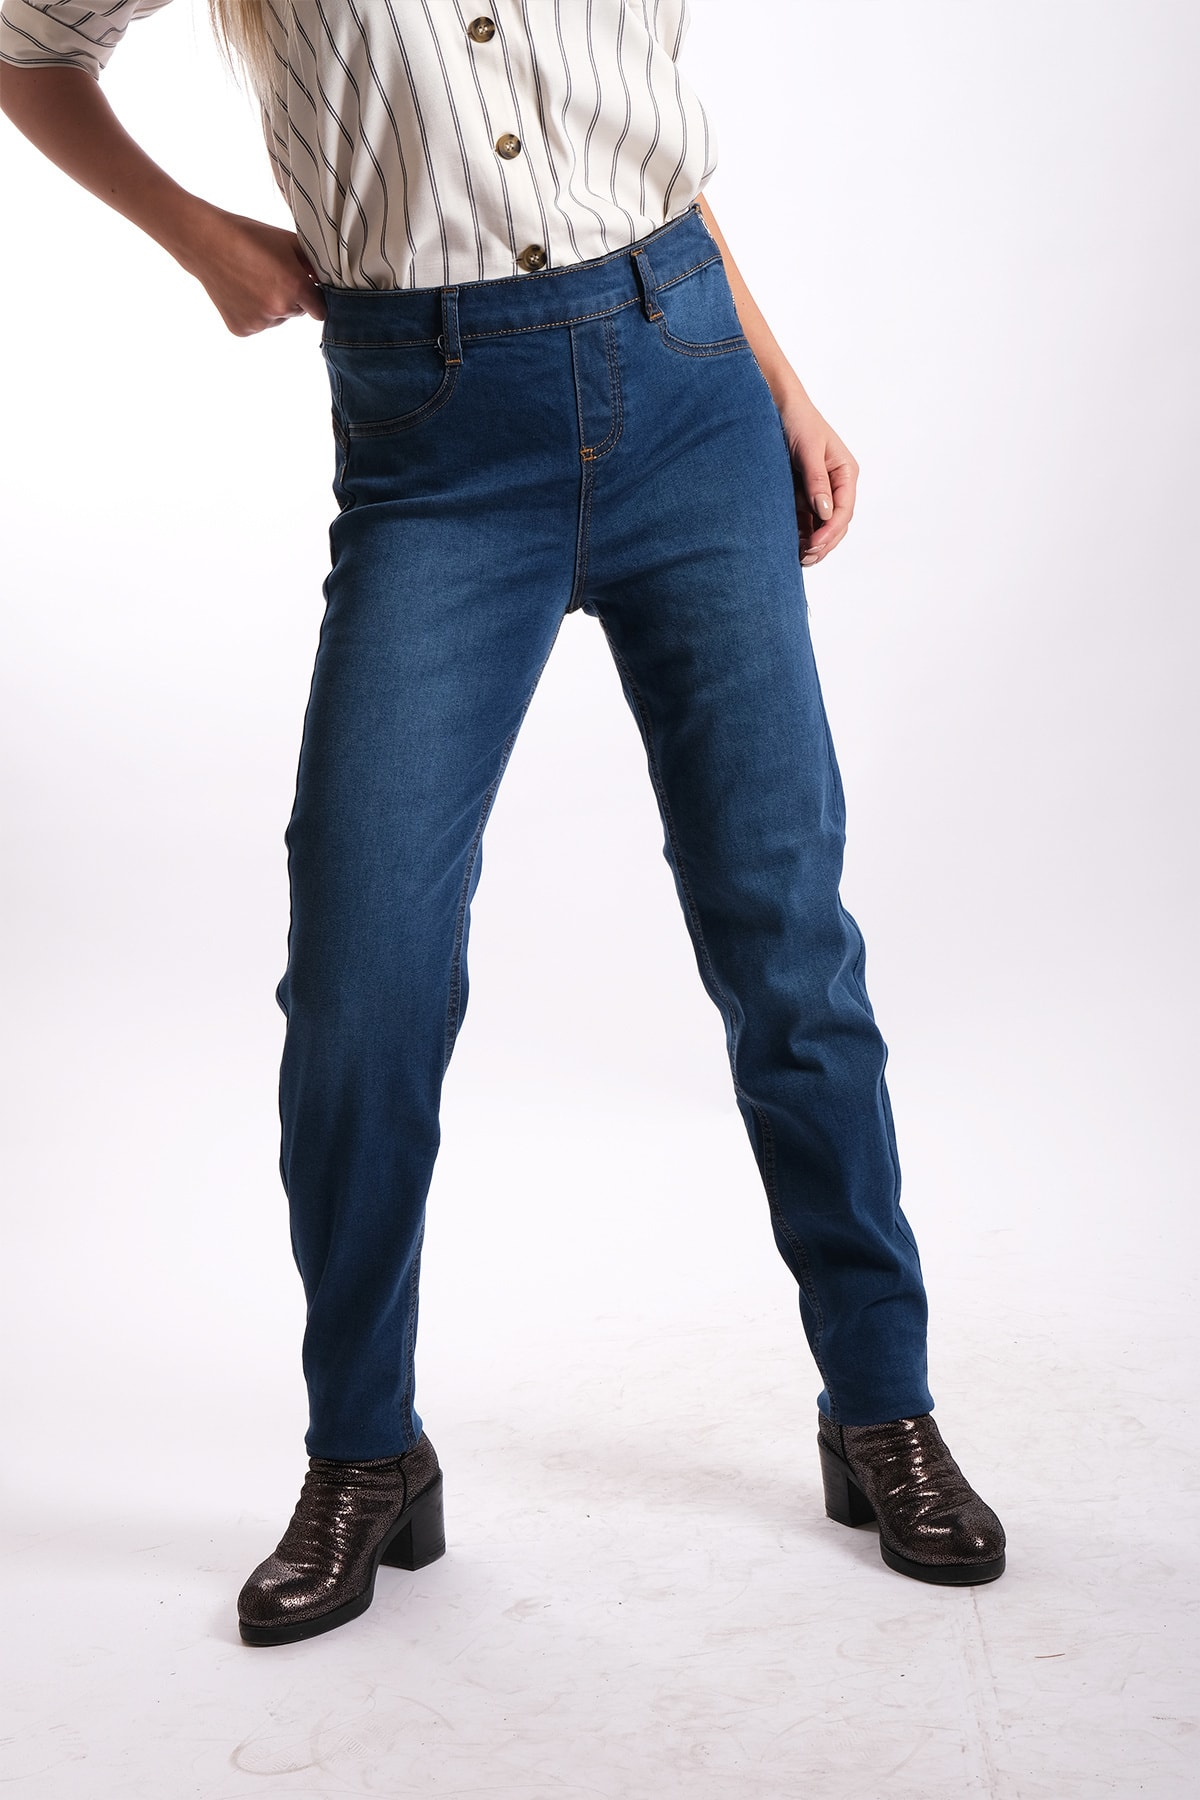 Blues Outlet Kadın B.beden Beli Korseli Jeans 1